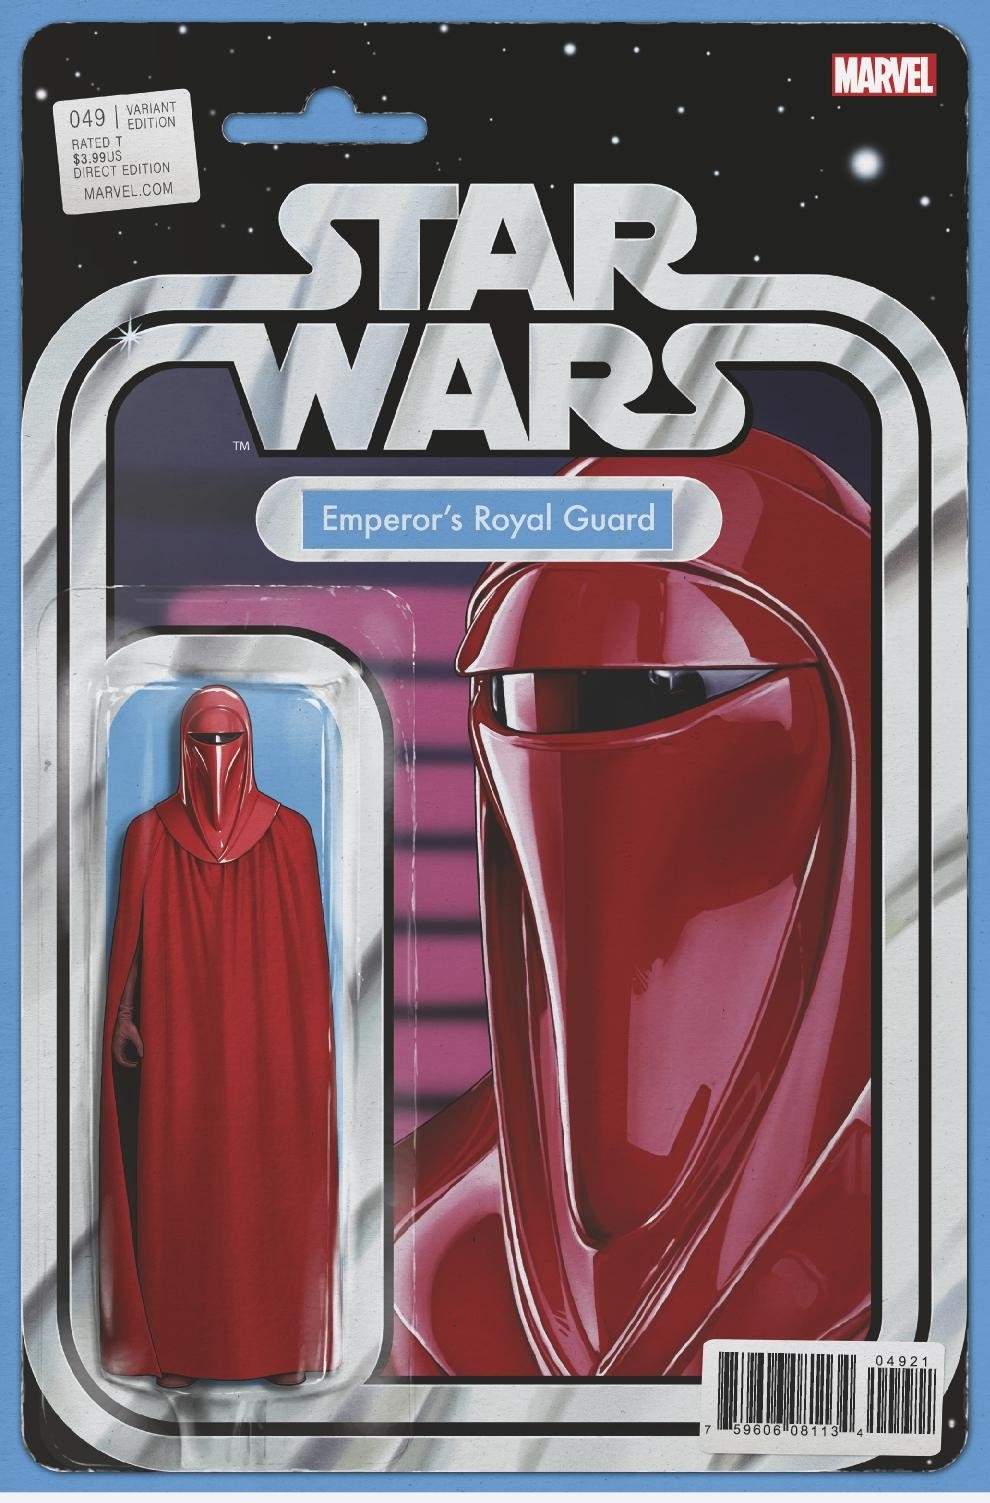 Star Wars #49 (Action Figure Variant Cover) (06.06.2018)